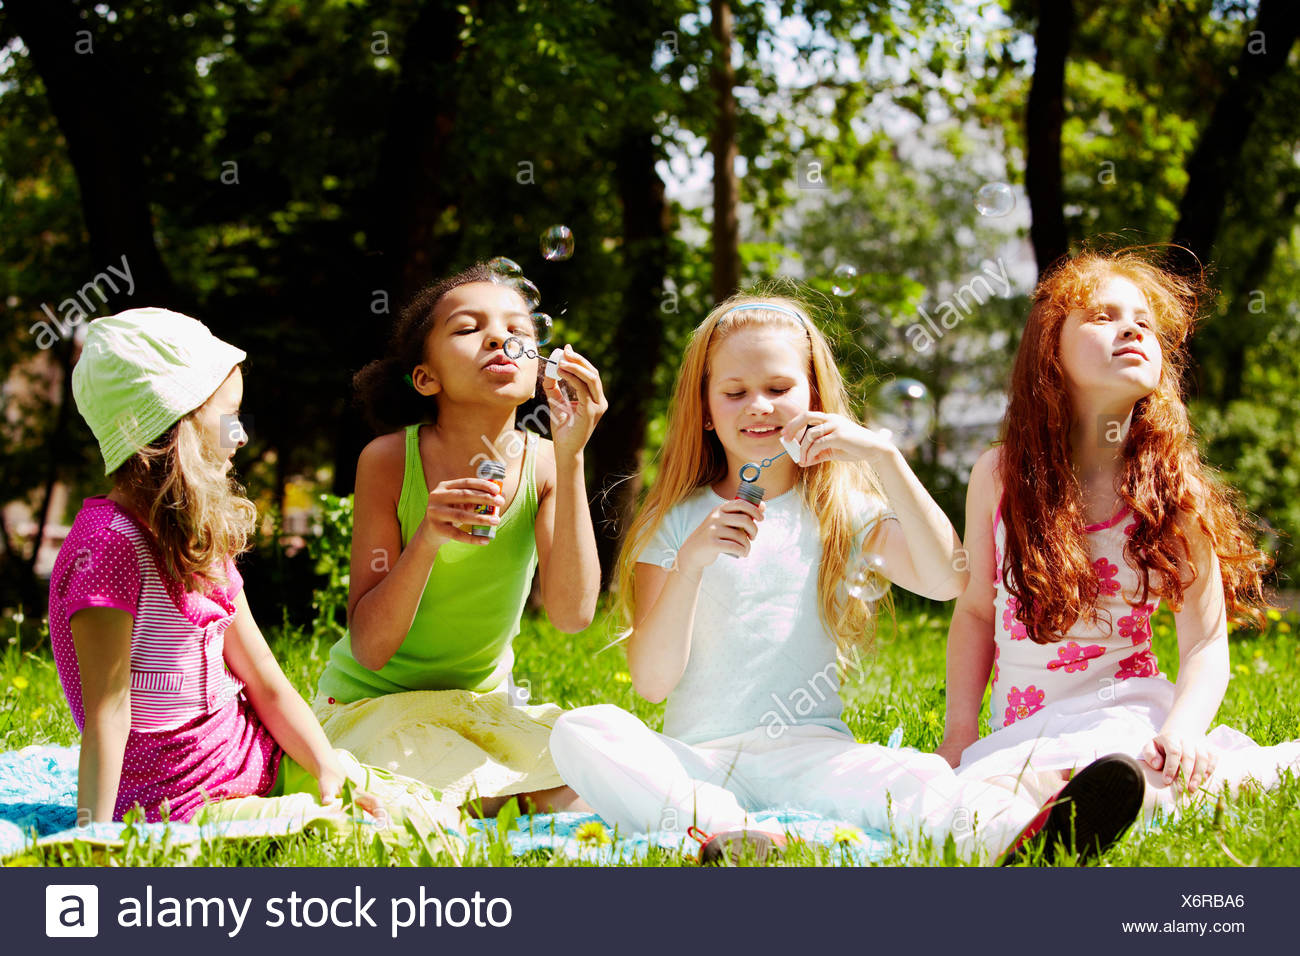 humans human beings people folk persons human human being some several a few laugh laughs laughing twit giggle smile smiling - Stock Image